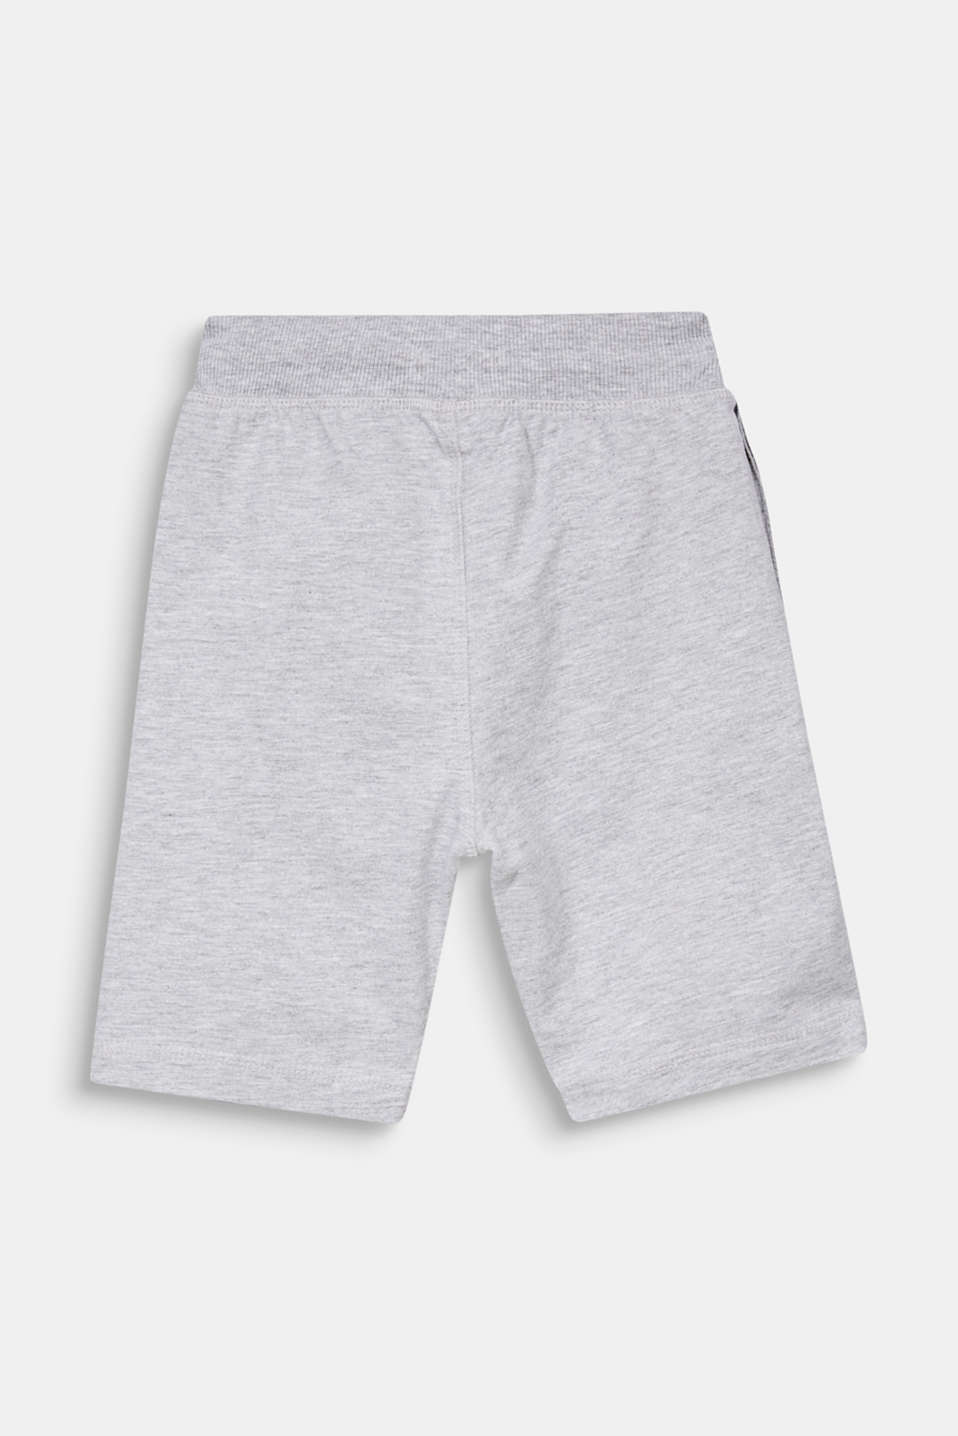 Sweatshirt shorts with a print, 100% cotton, HEATHER SILVER, detail image number 1